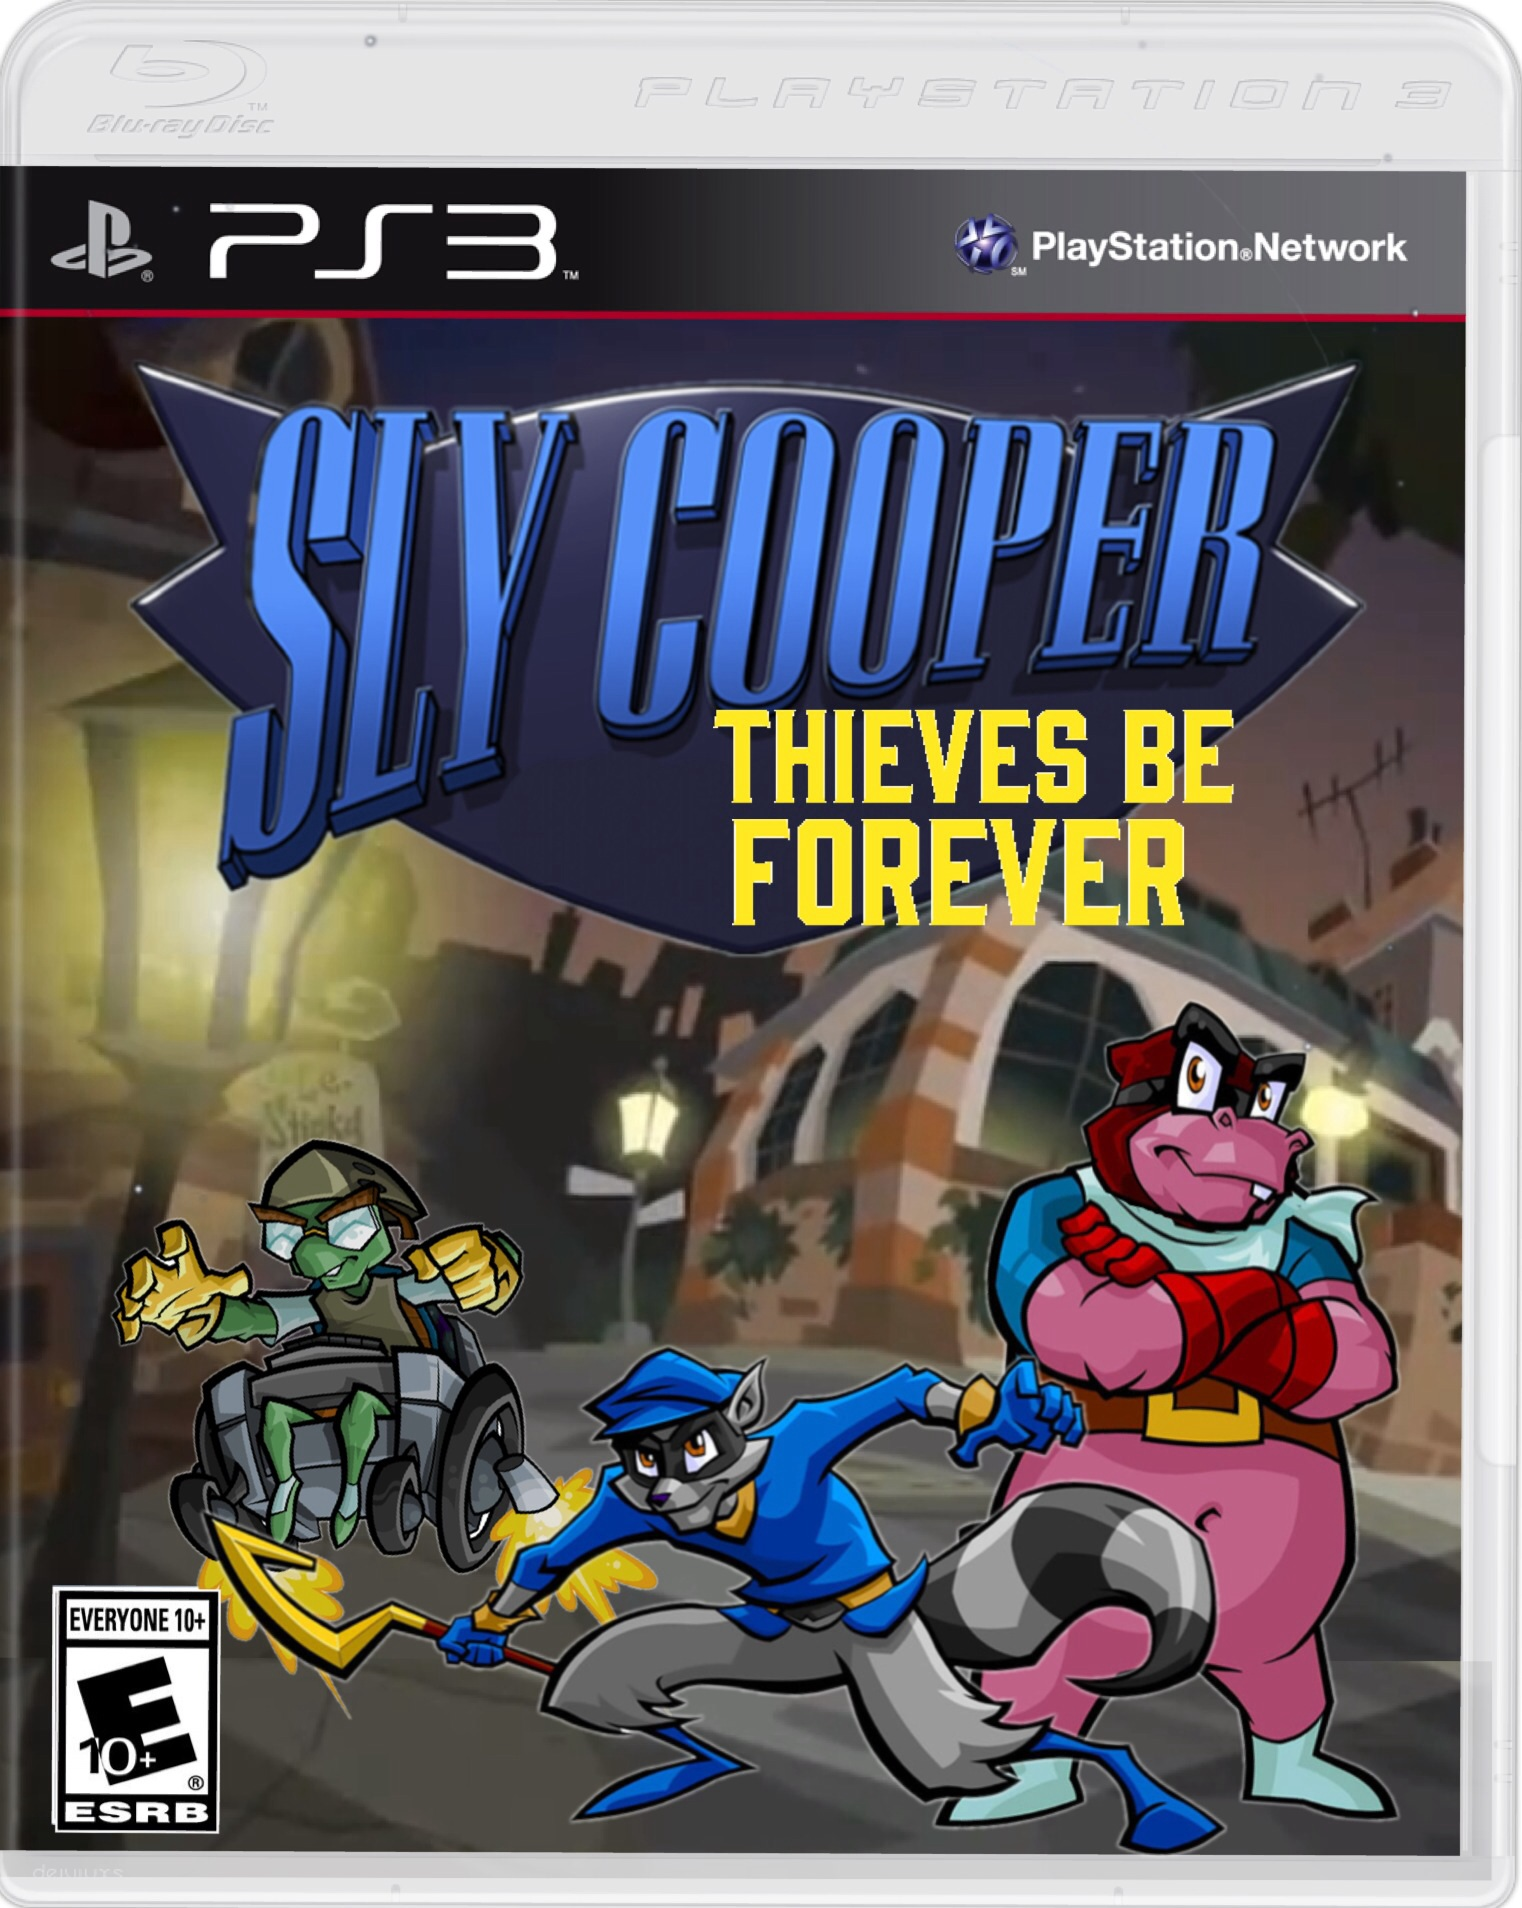 Sly cooper 5 thieves be forever sly cooper fan fic wiki fandom